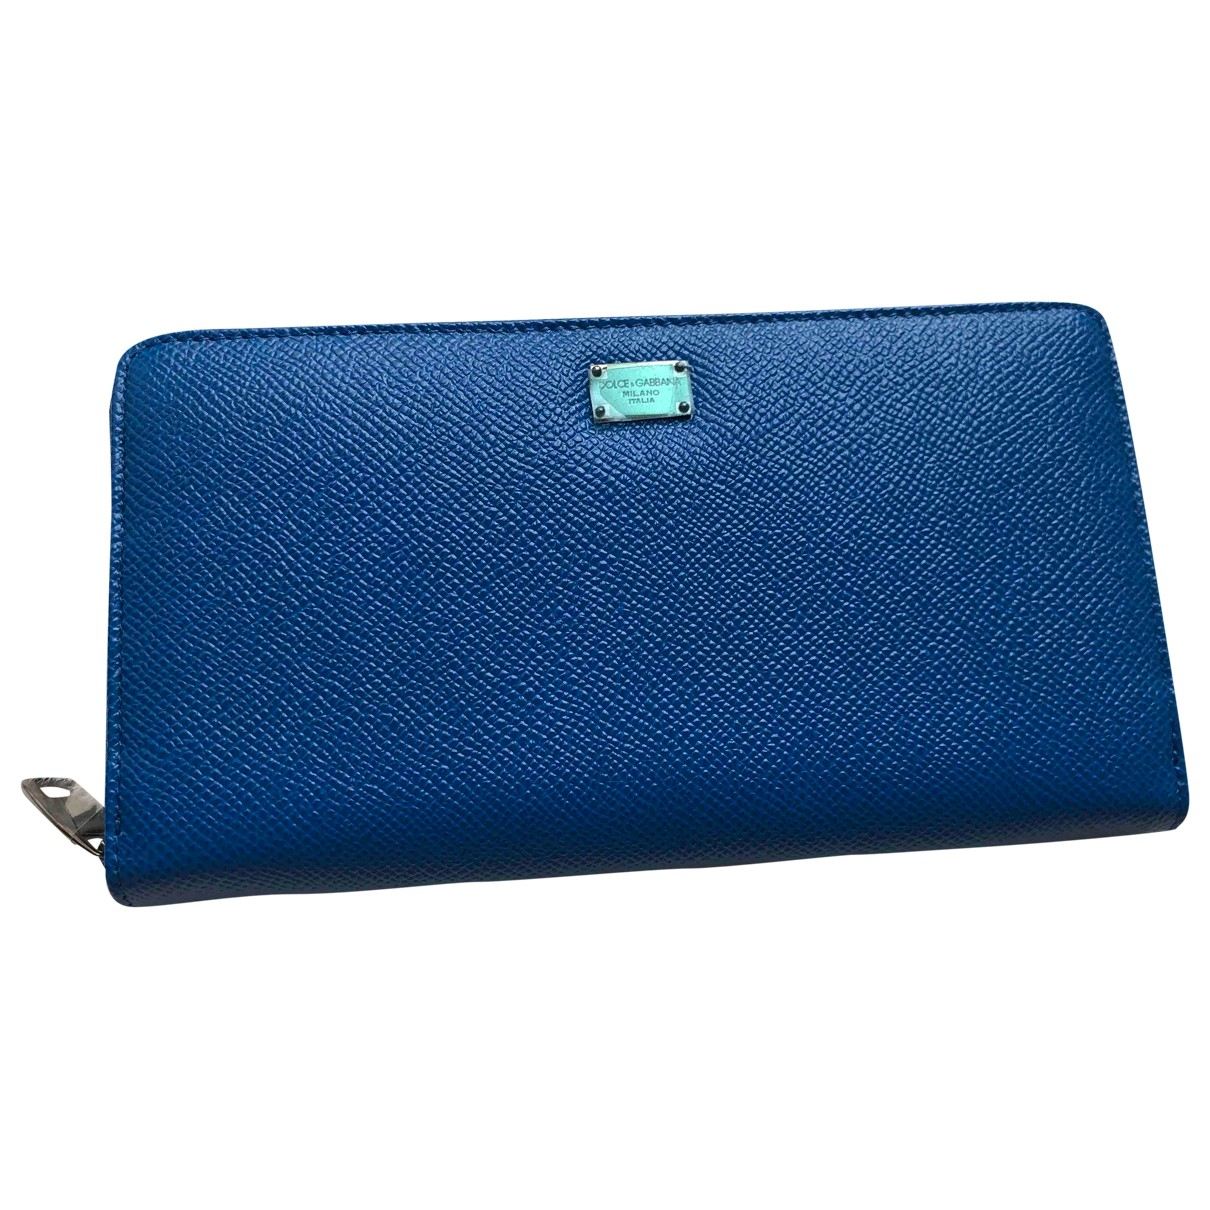 Dolce & Gabbana \N Blue Leather wallet for Women \N